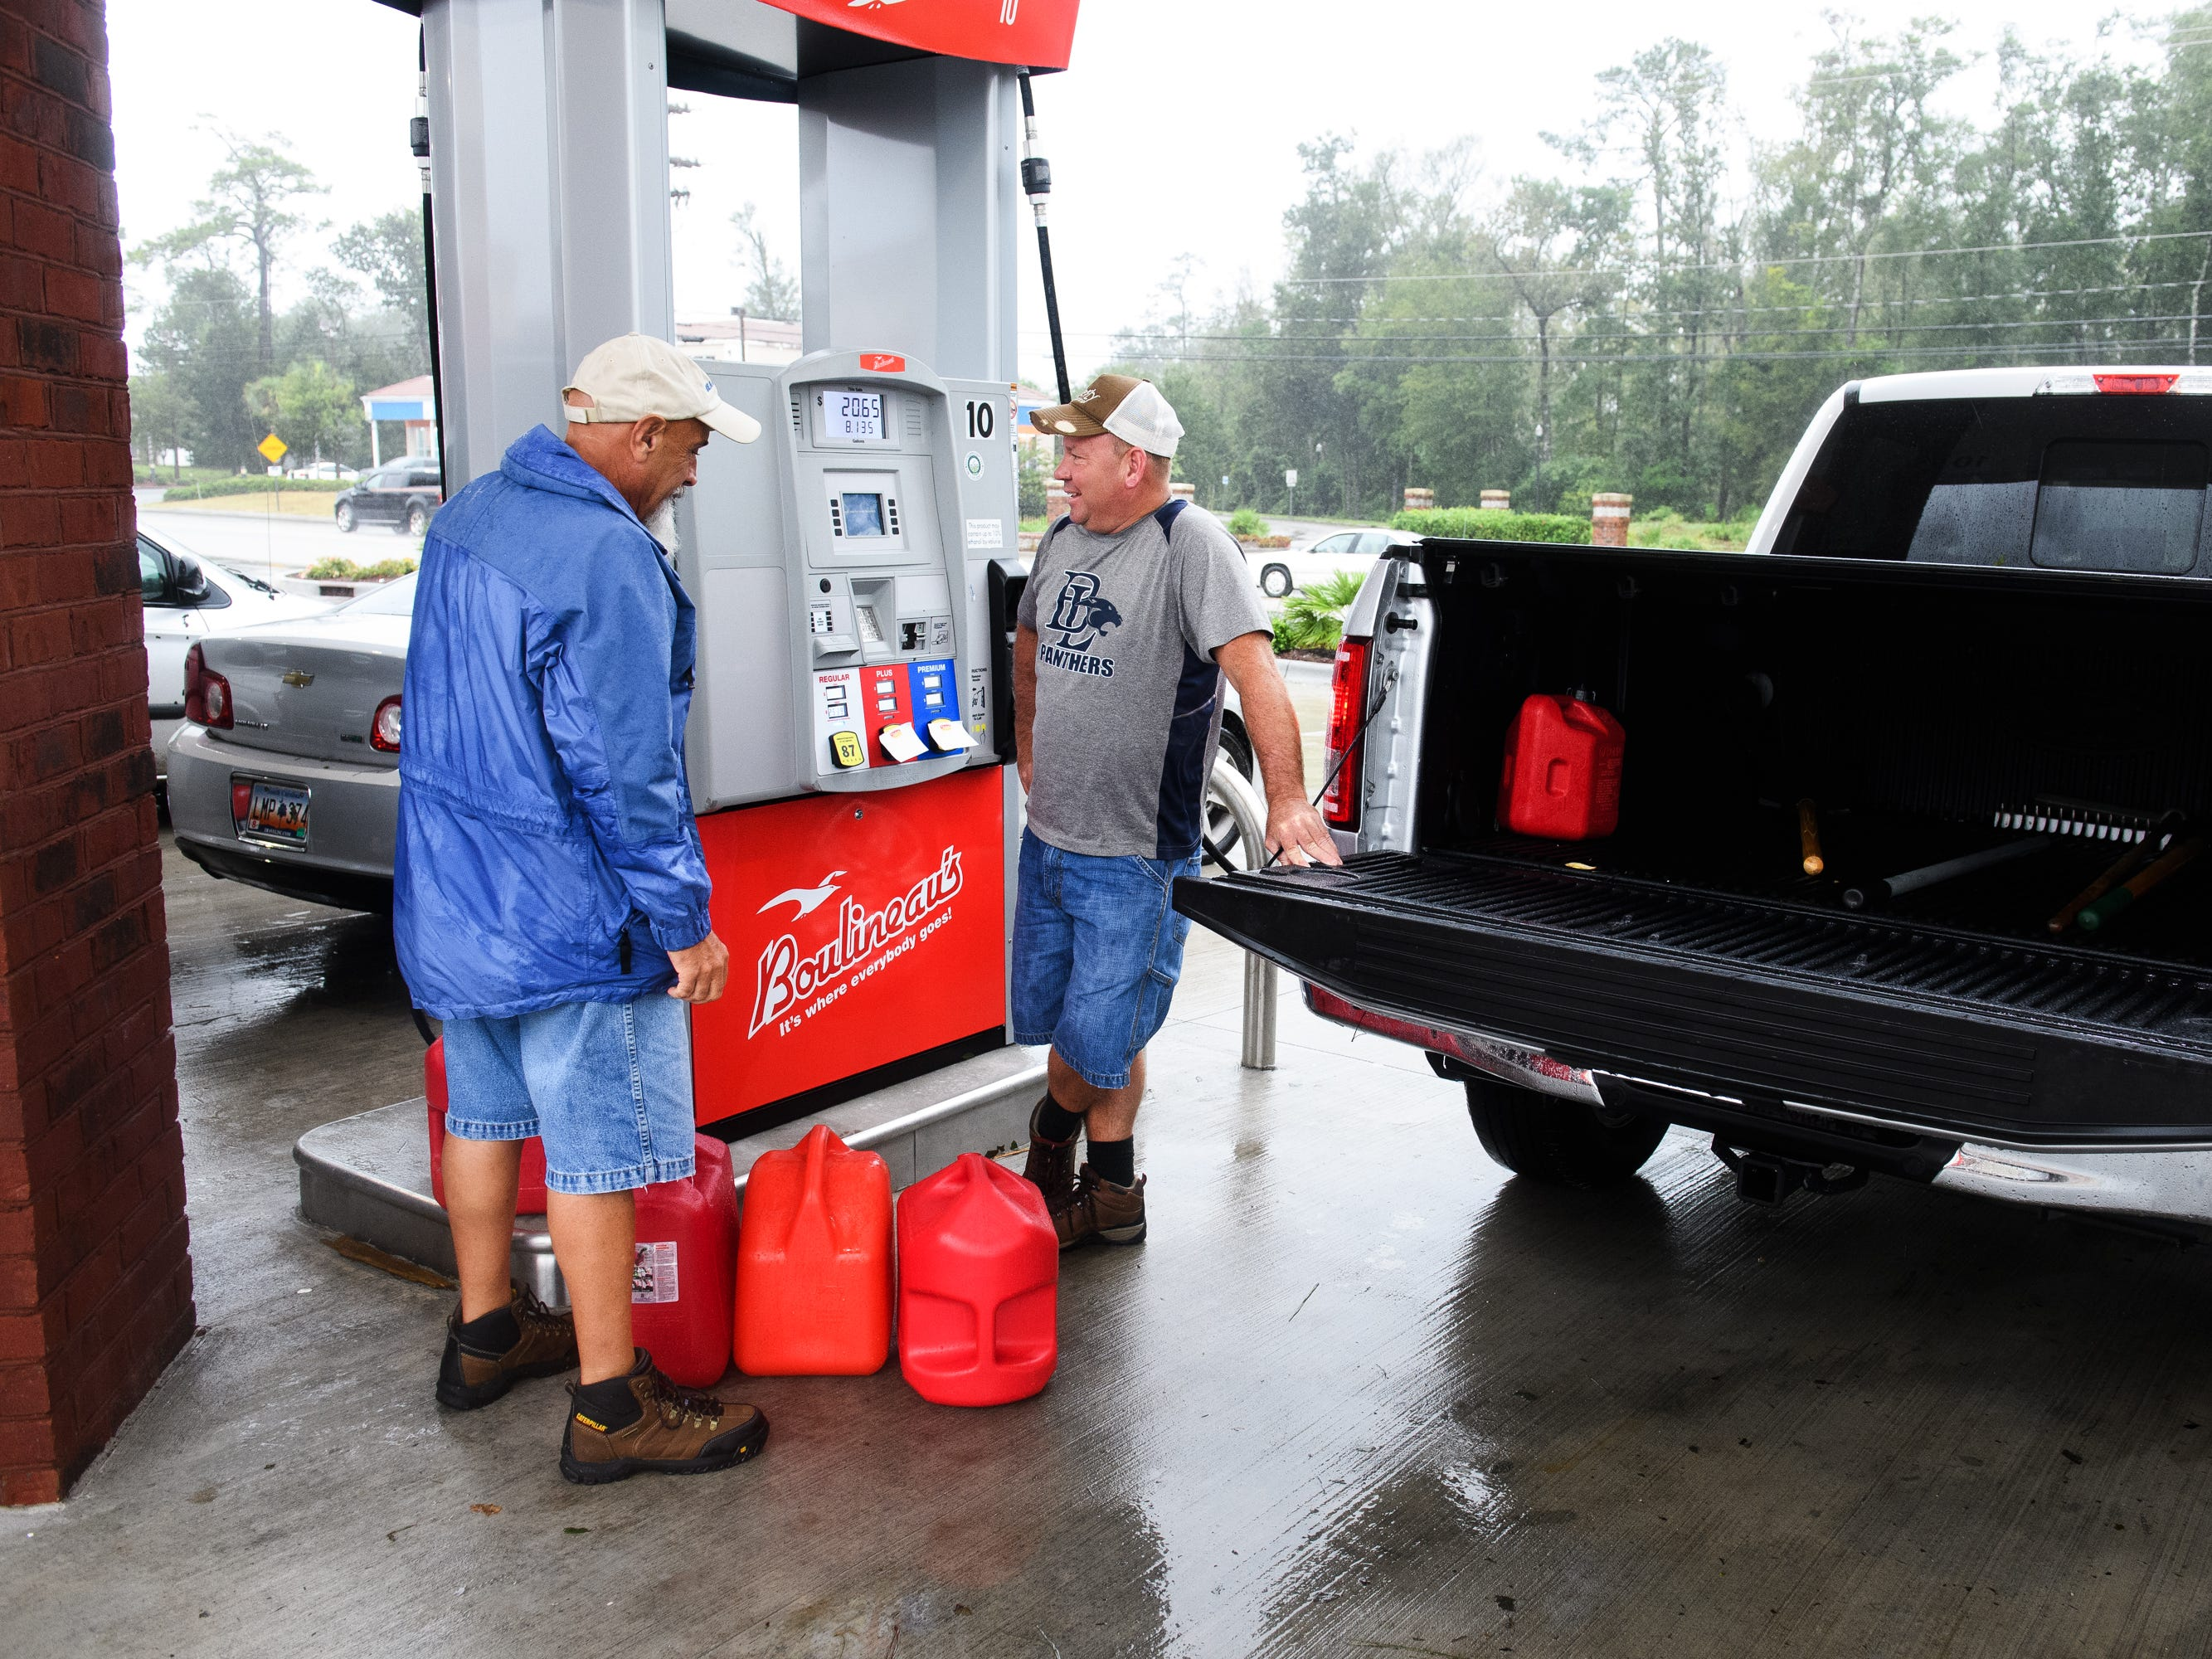 Keith Hanson and Les Goldstein fill their gas cans at Boulineau's Corner on Saturday, Sept. 15, 2018.